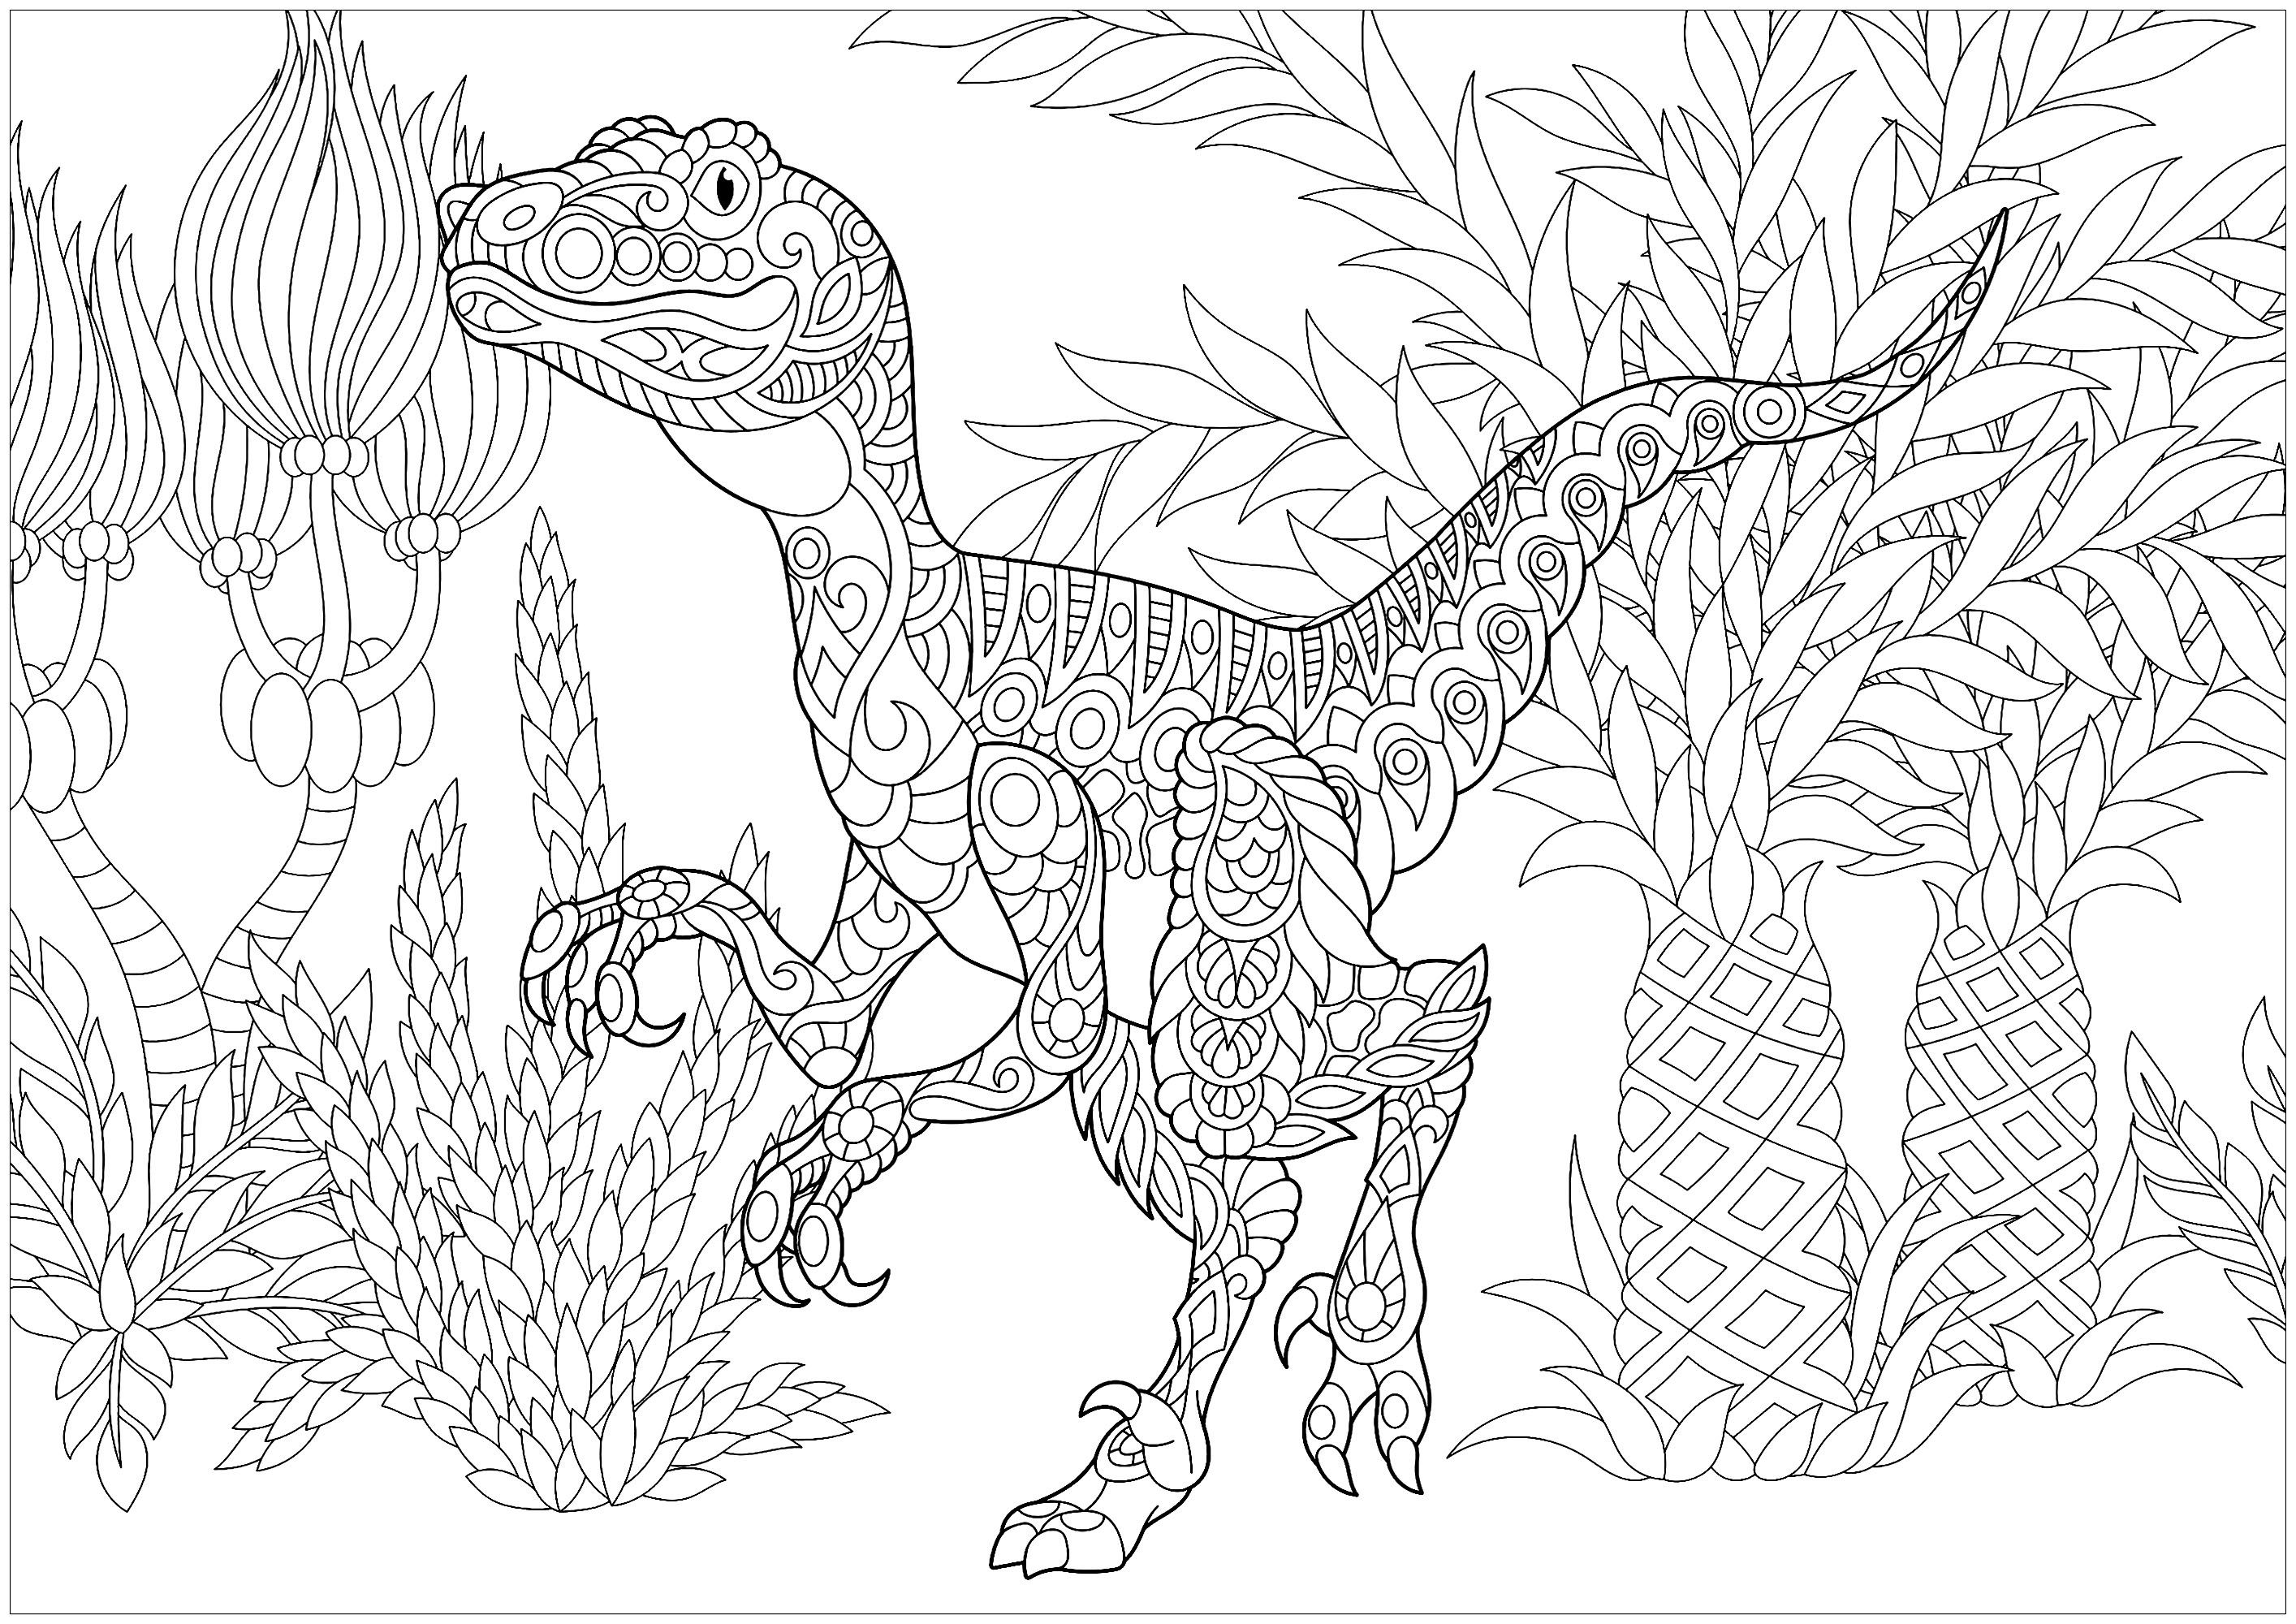 Stylized Velociraptor Dinosaur With Doodle And Zentangle Elements